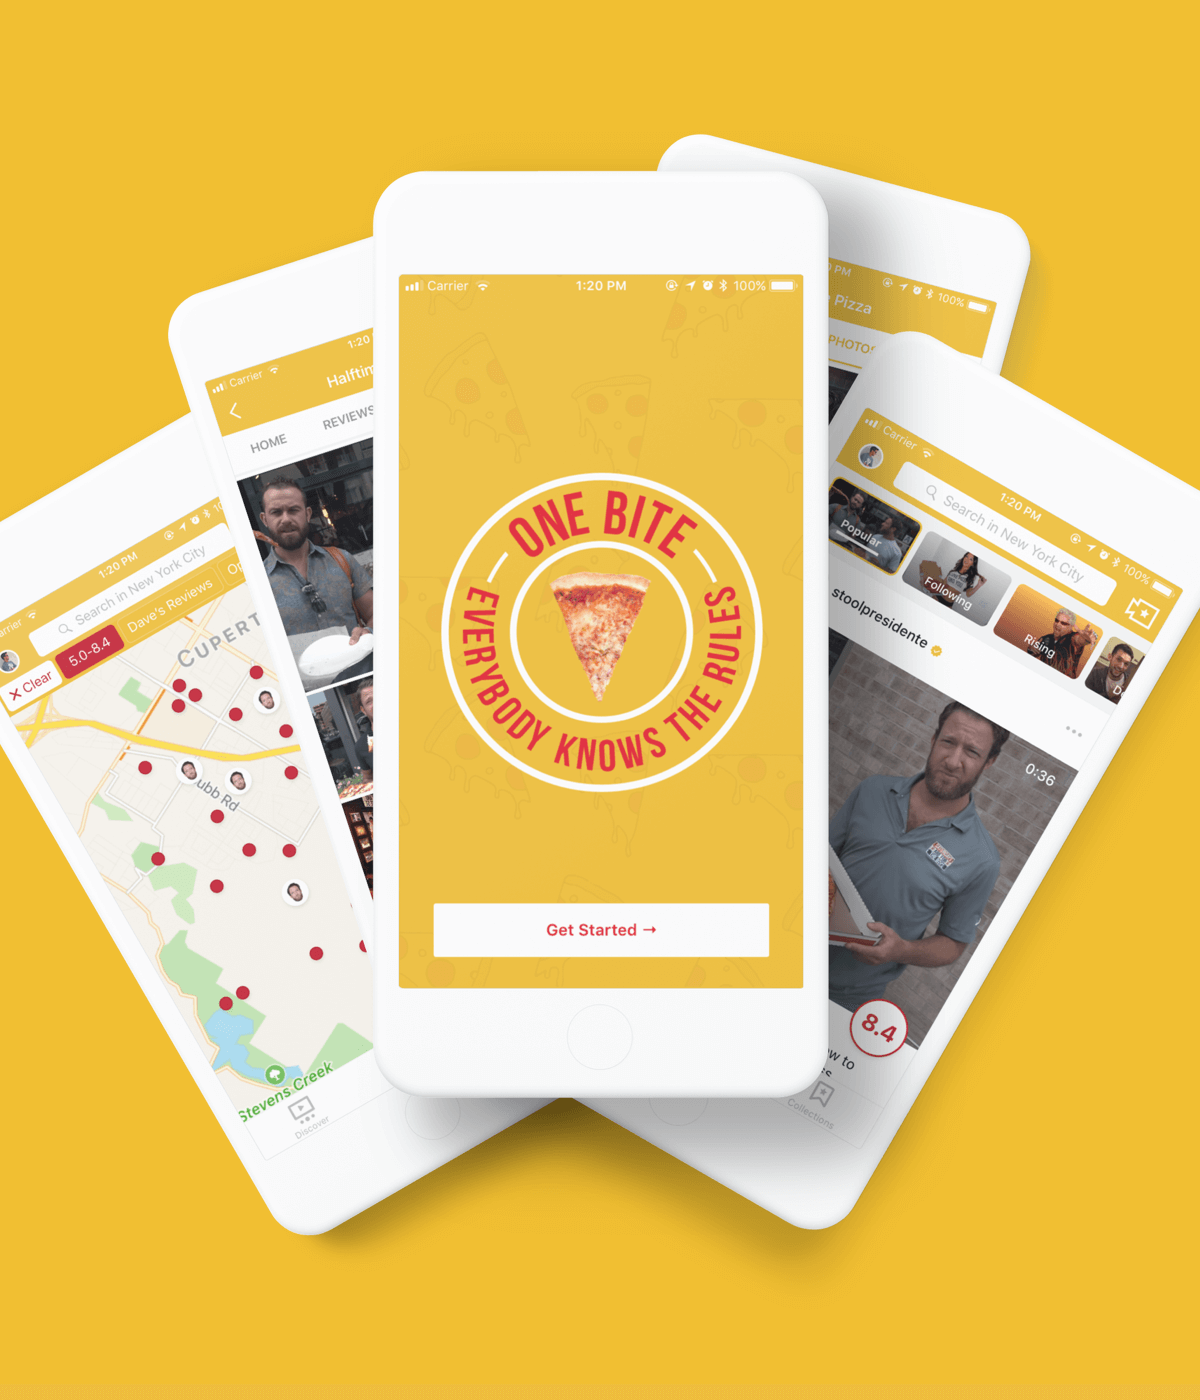 One Bite iOS Application in collaboration with Barstool Sports